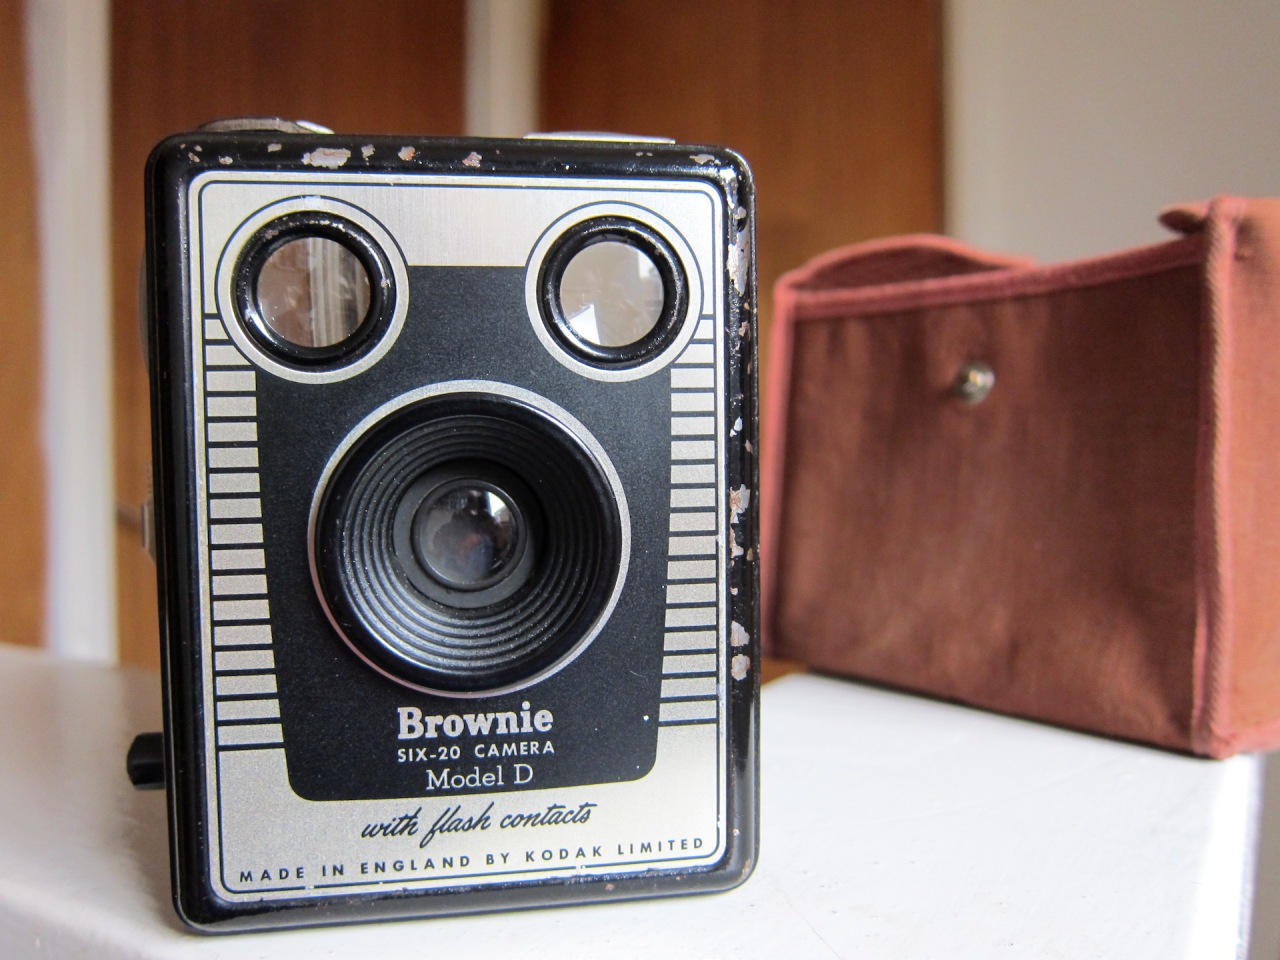 Kodak Brownie Six-20 Model D